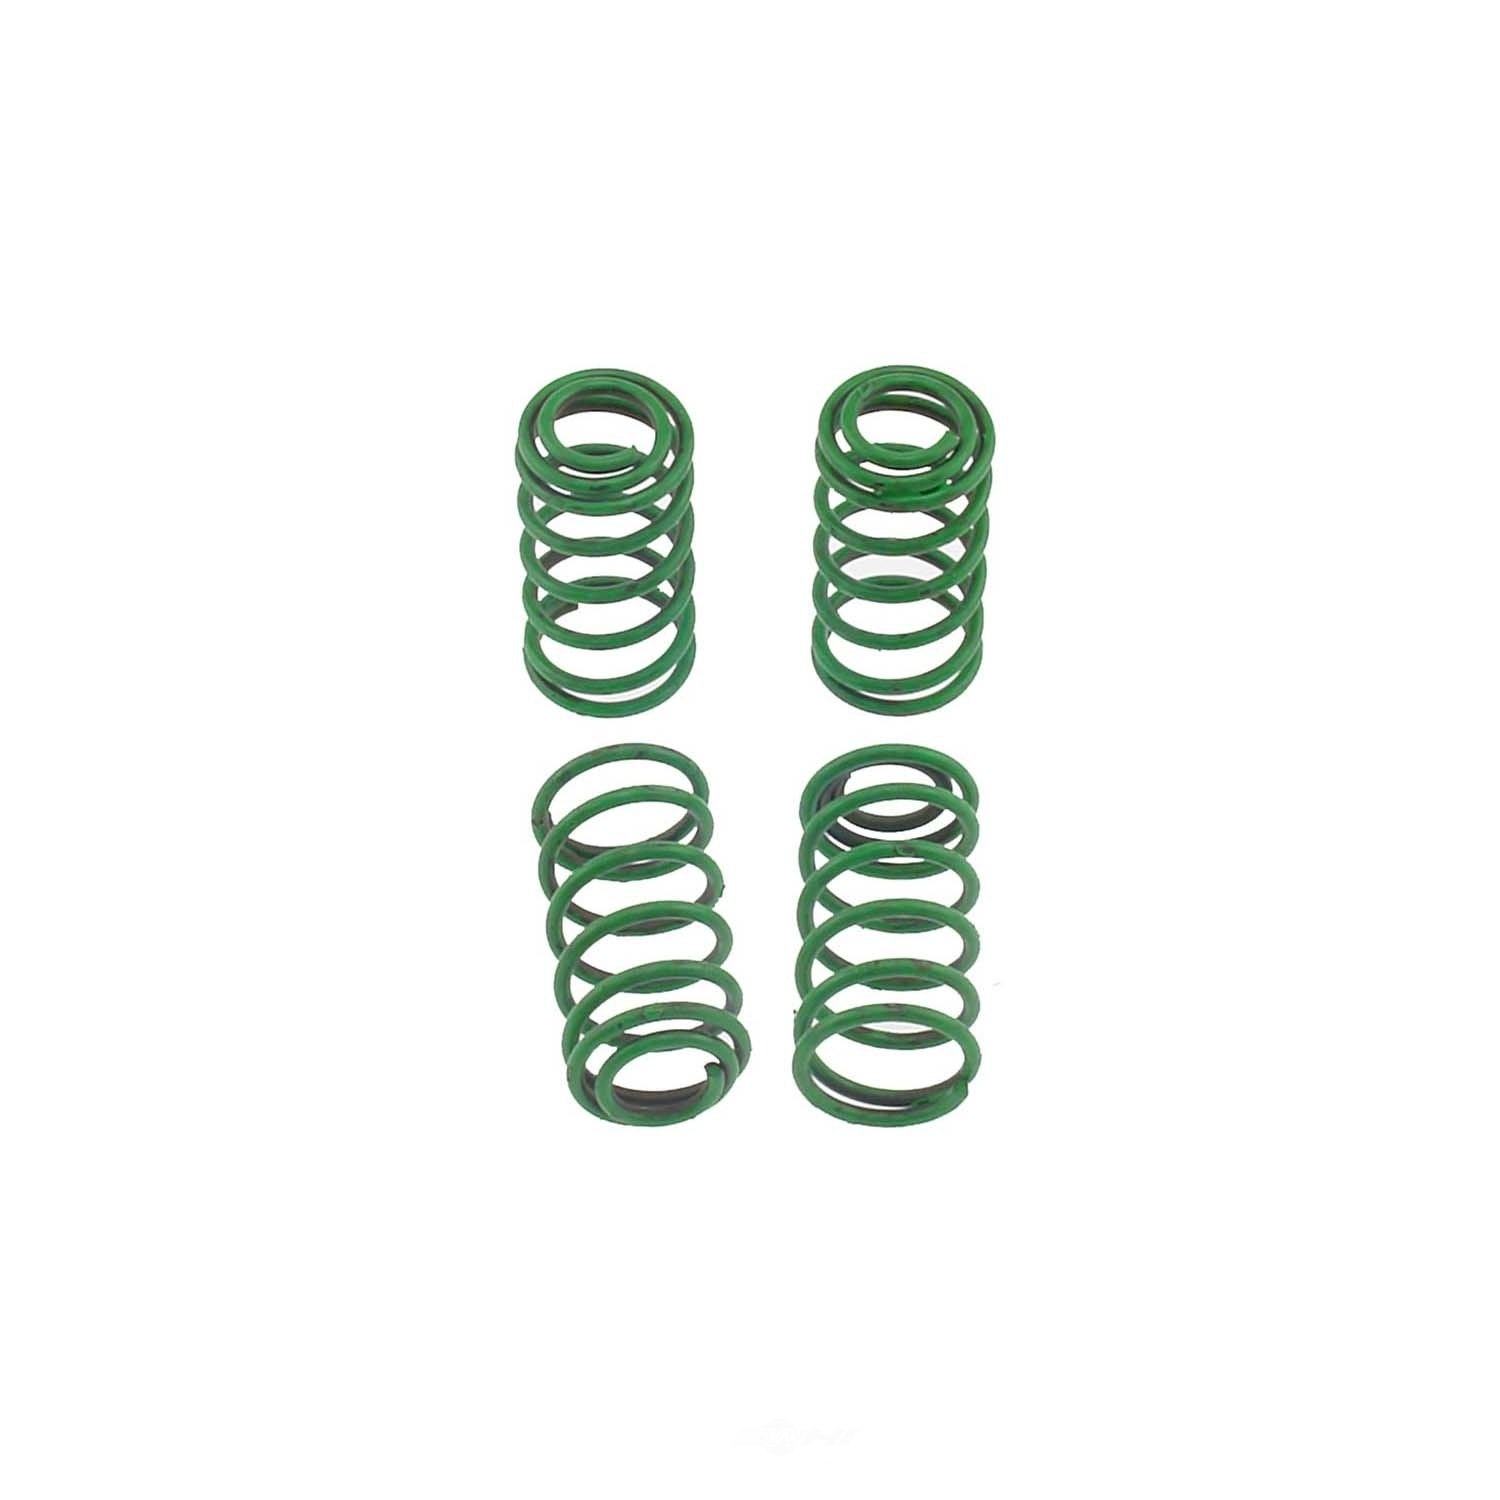 CARLSON QUALITY BRAKE PARTS - Drum Brake Hold Down Spring - CRL H1153-2